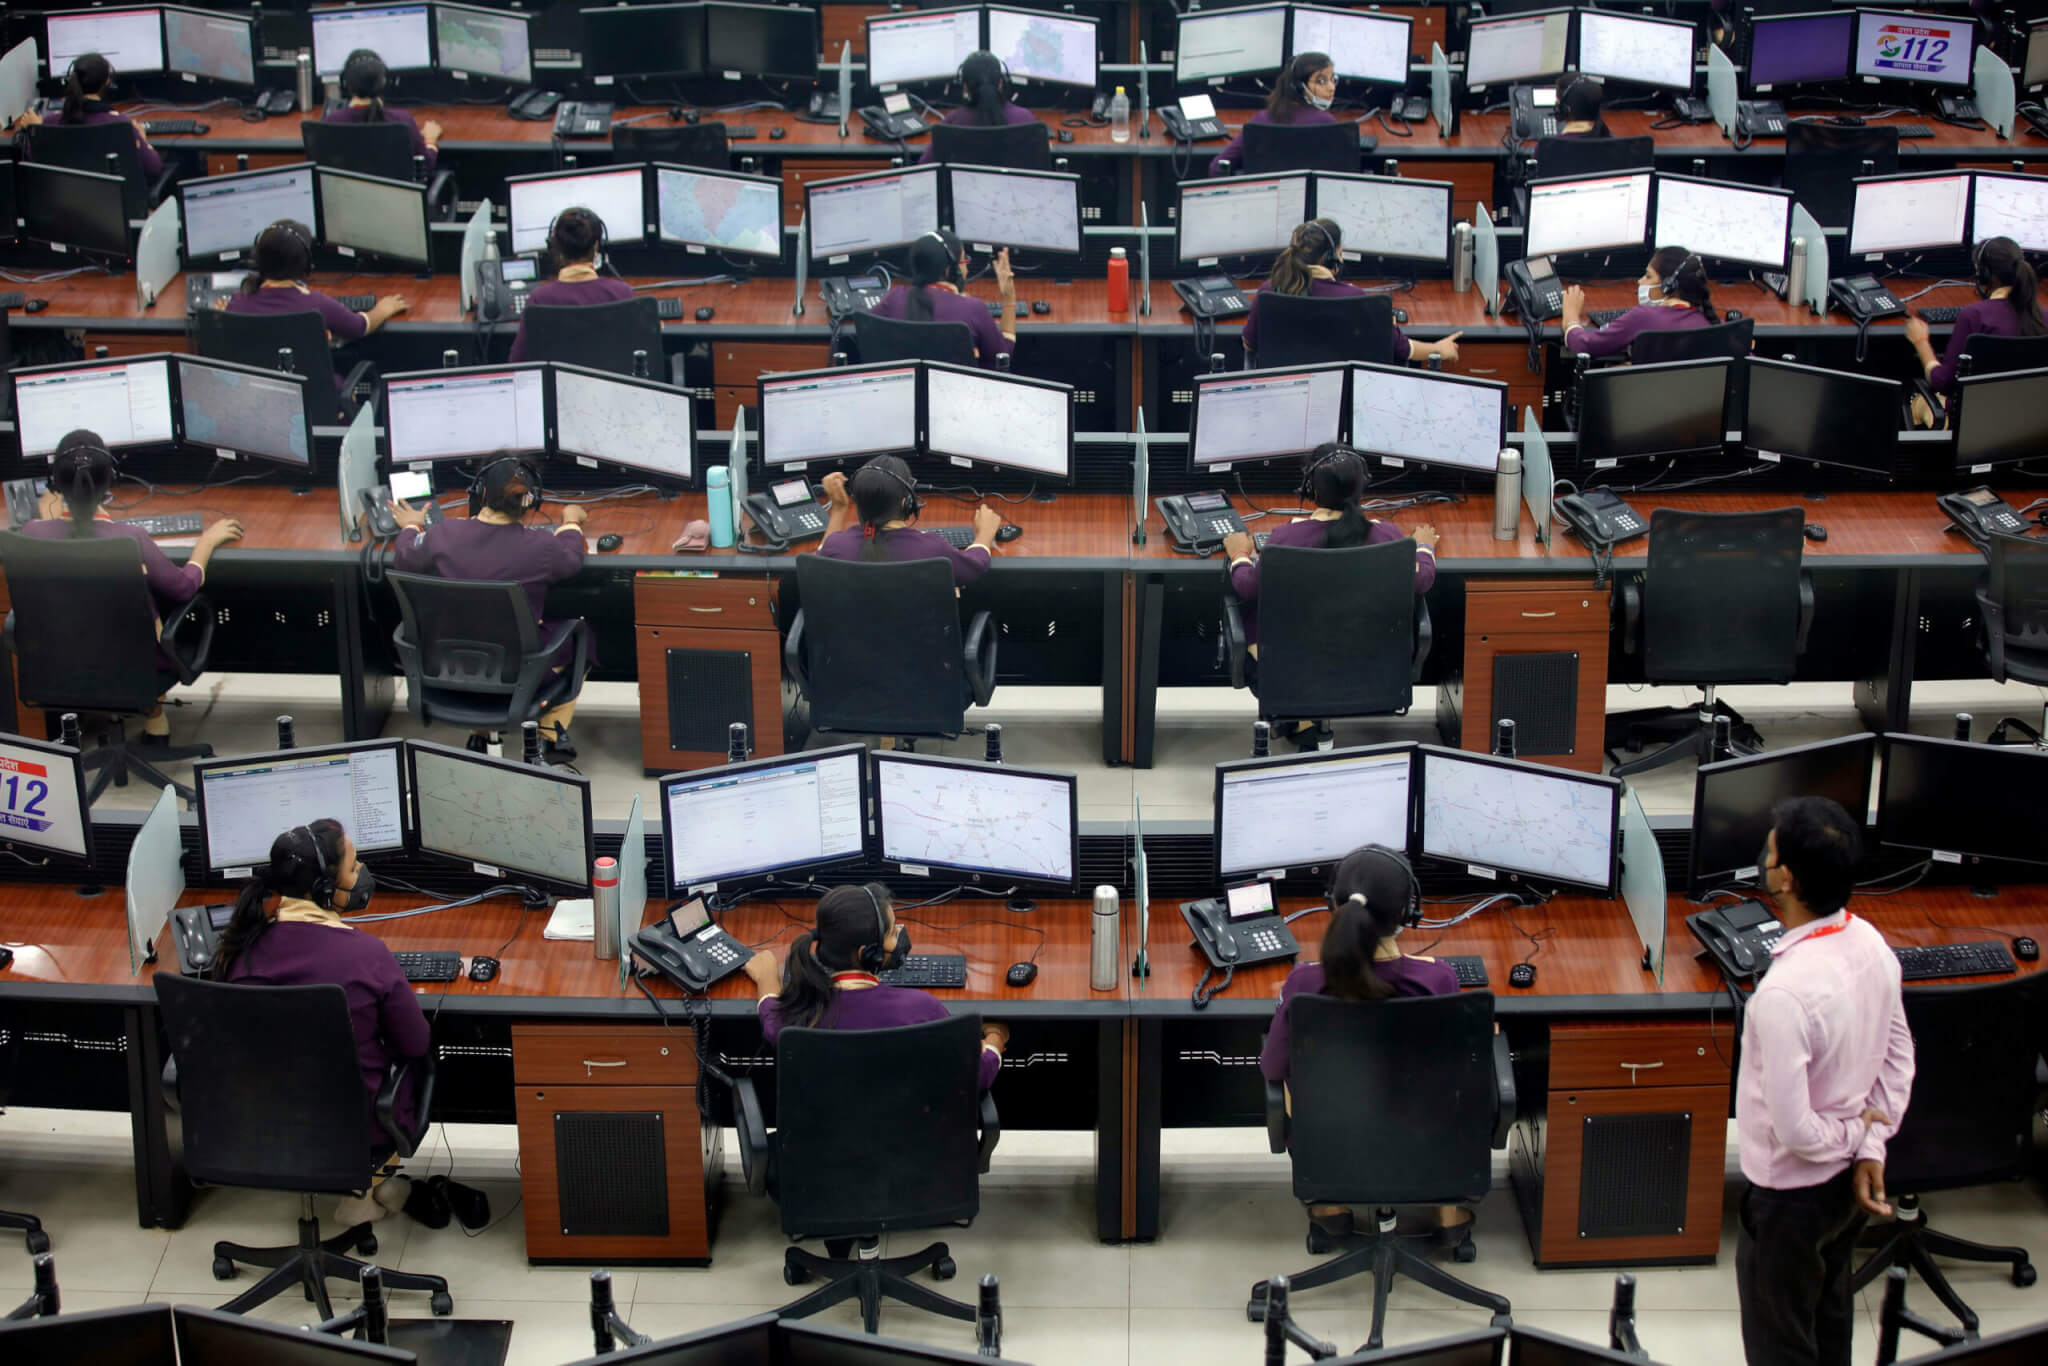 Infosys' staff may soon return to their offices